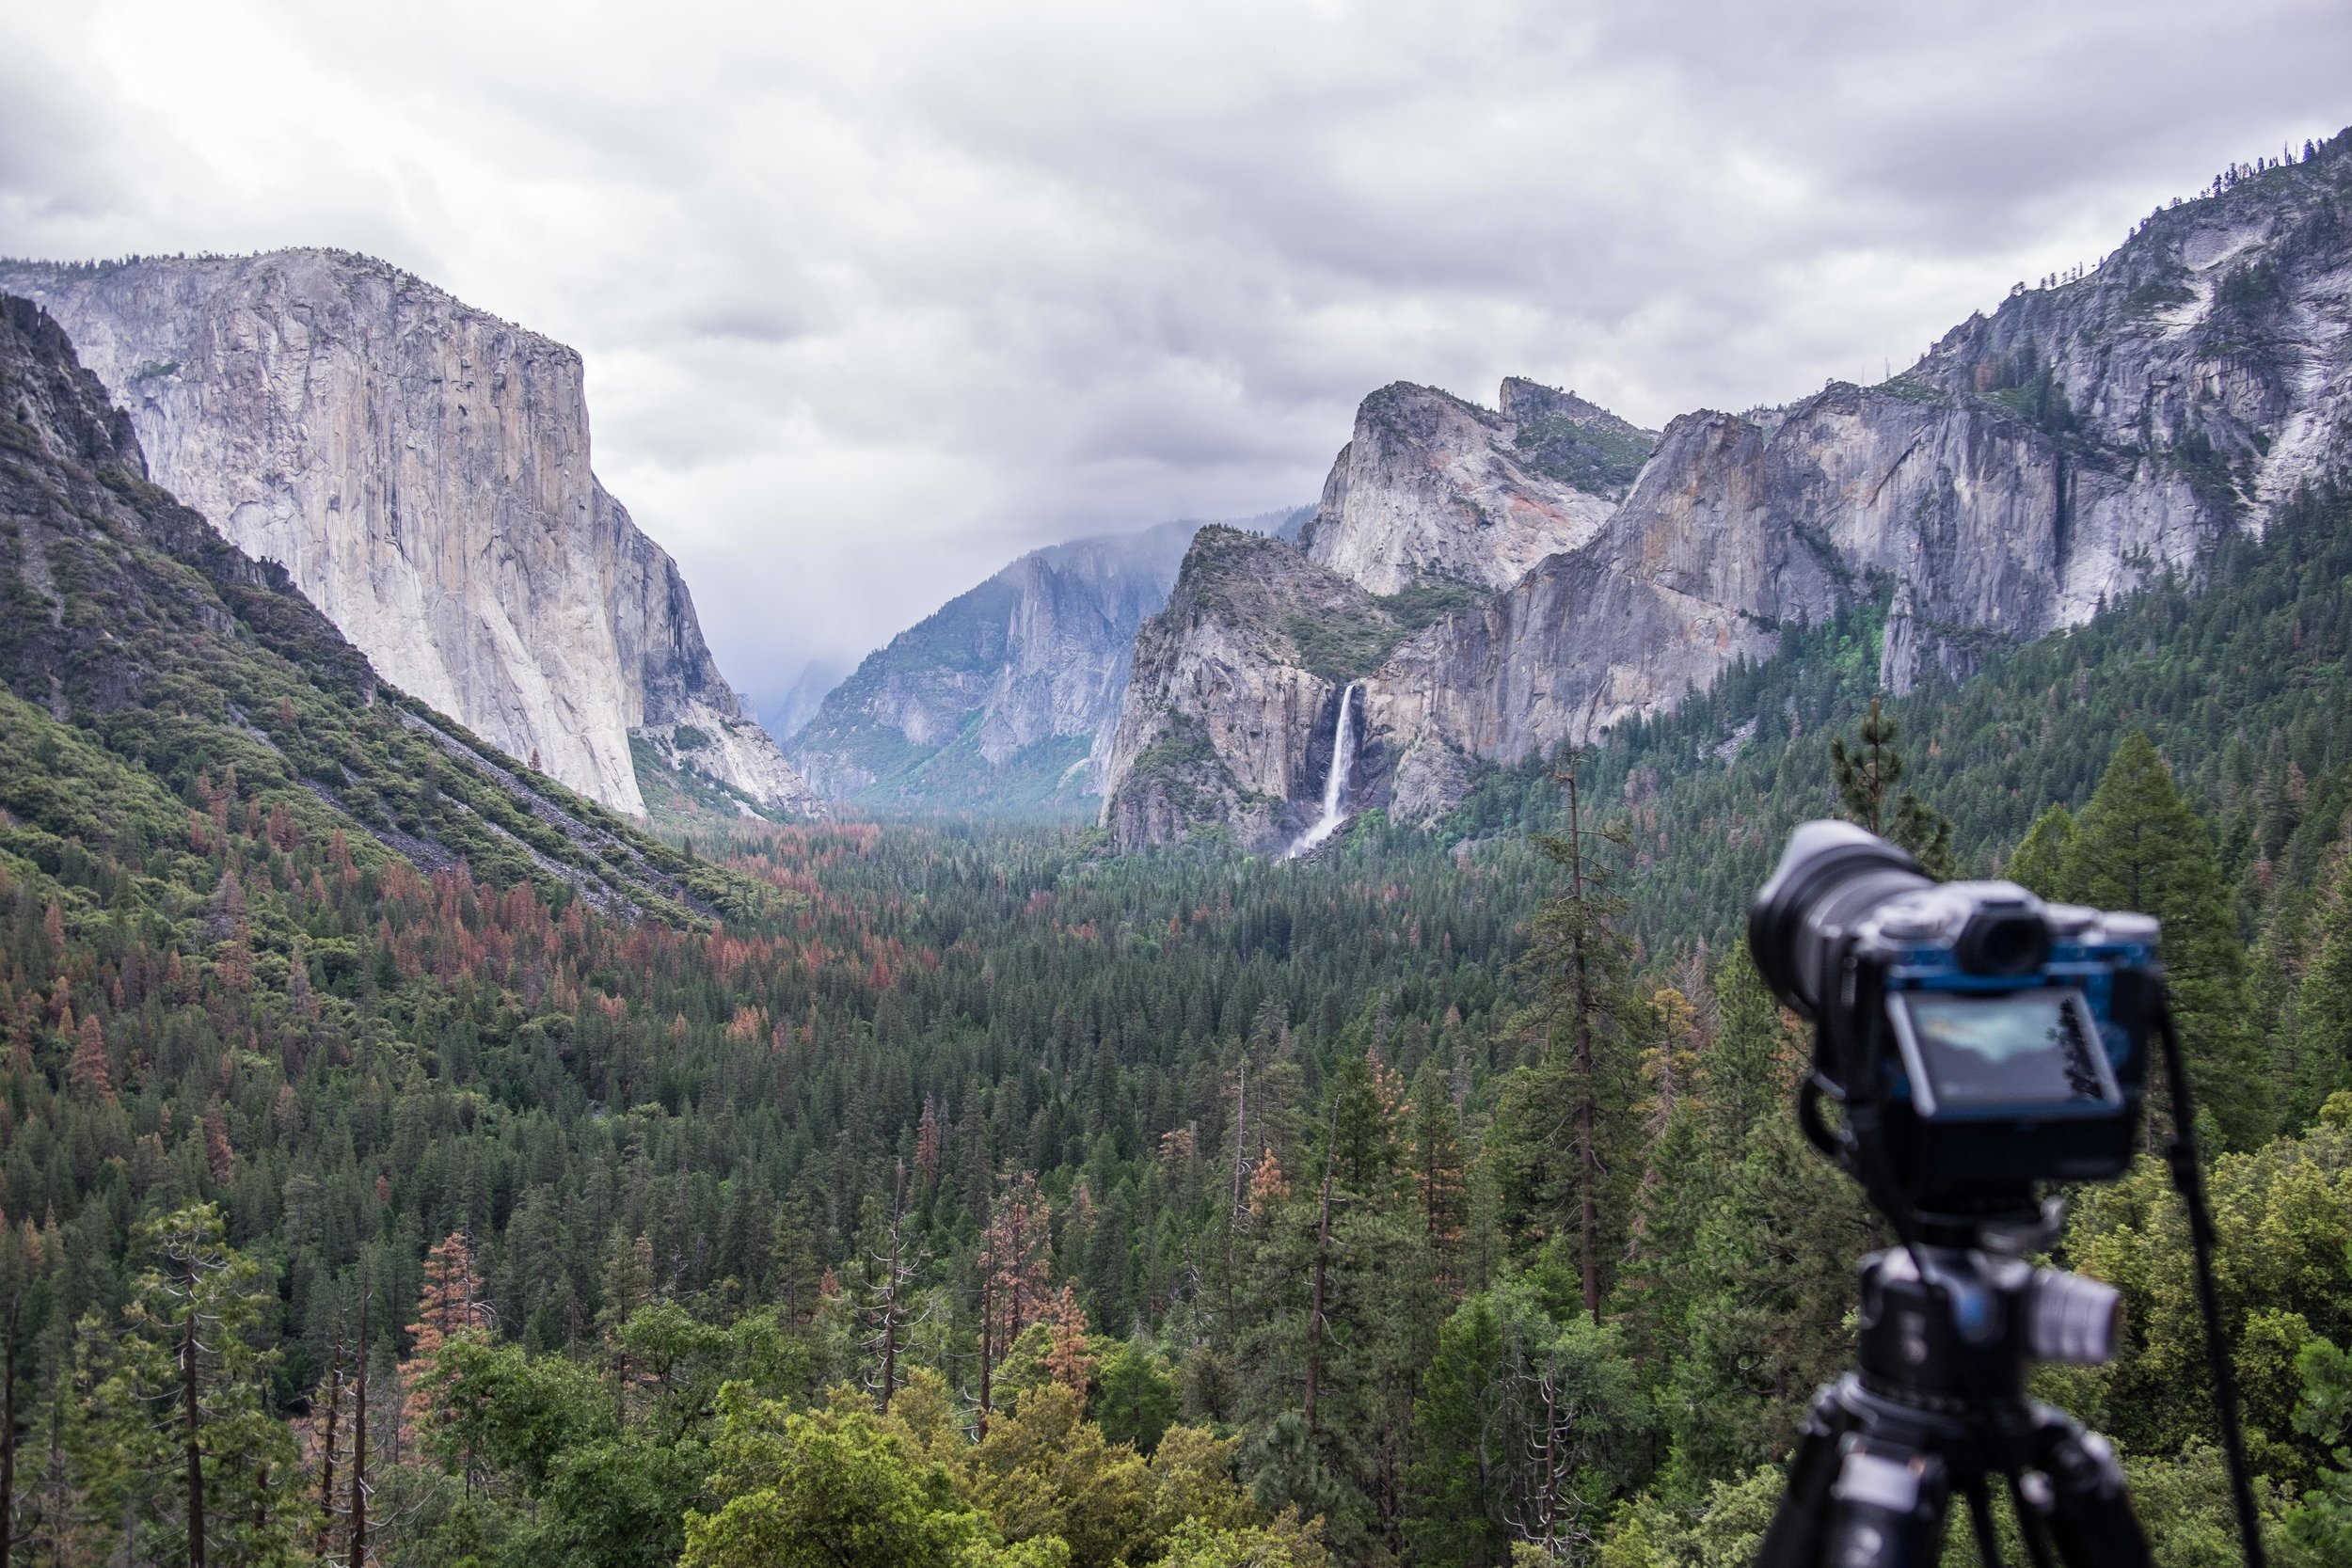 Fujifilm X-T1 Mirrorless Camera (set up for sunset at Tunnel View in Yosemite.)